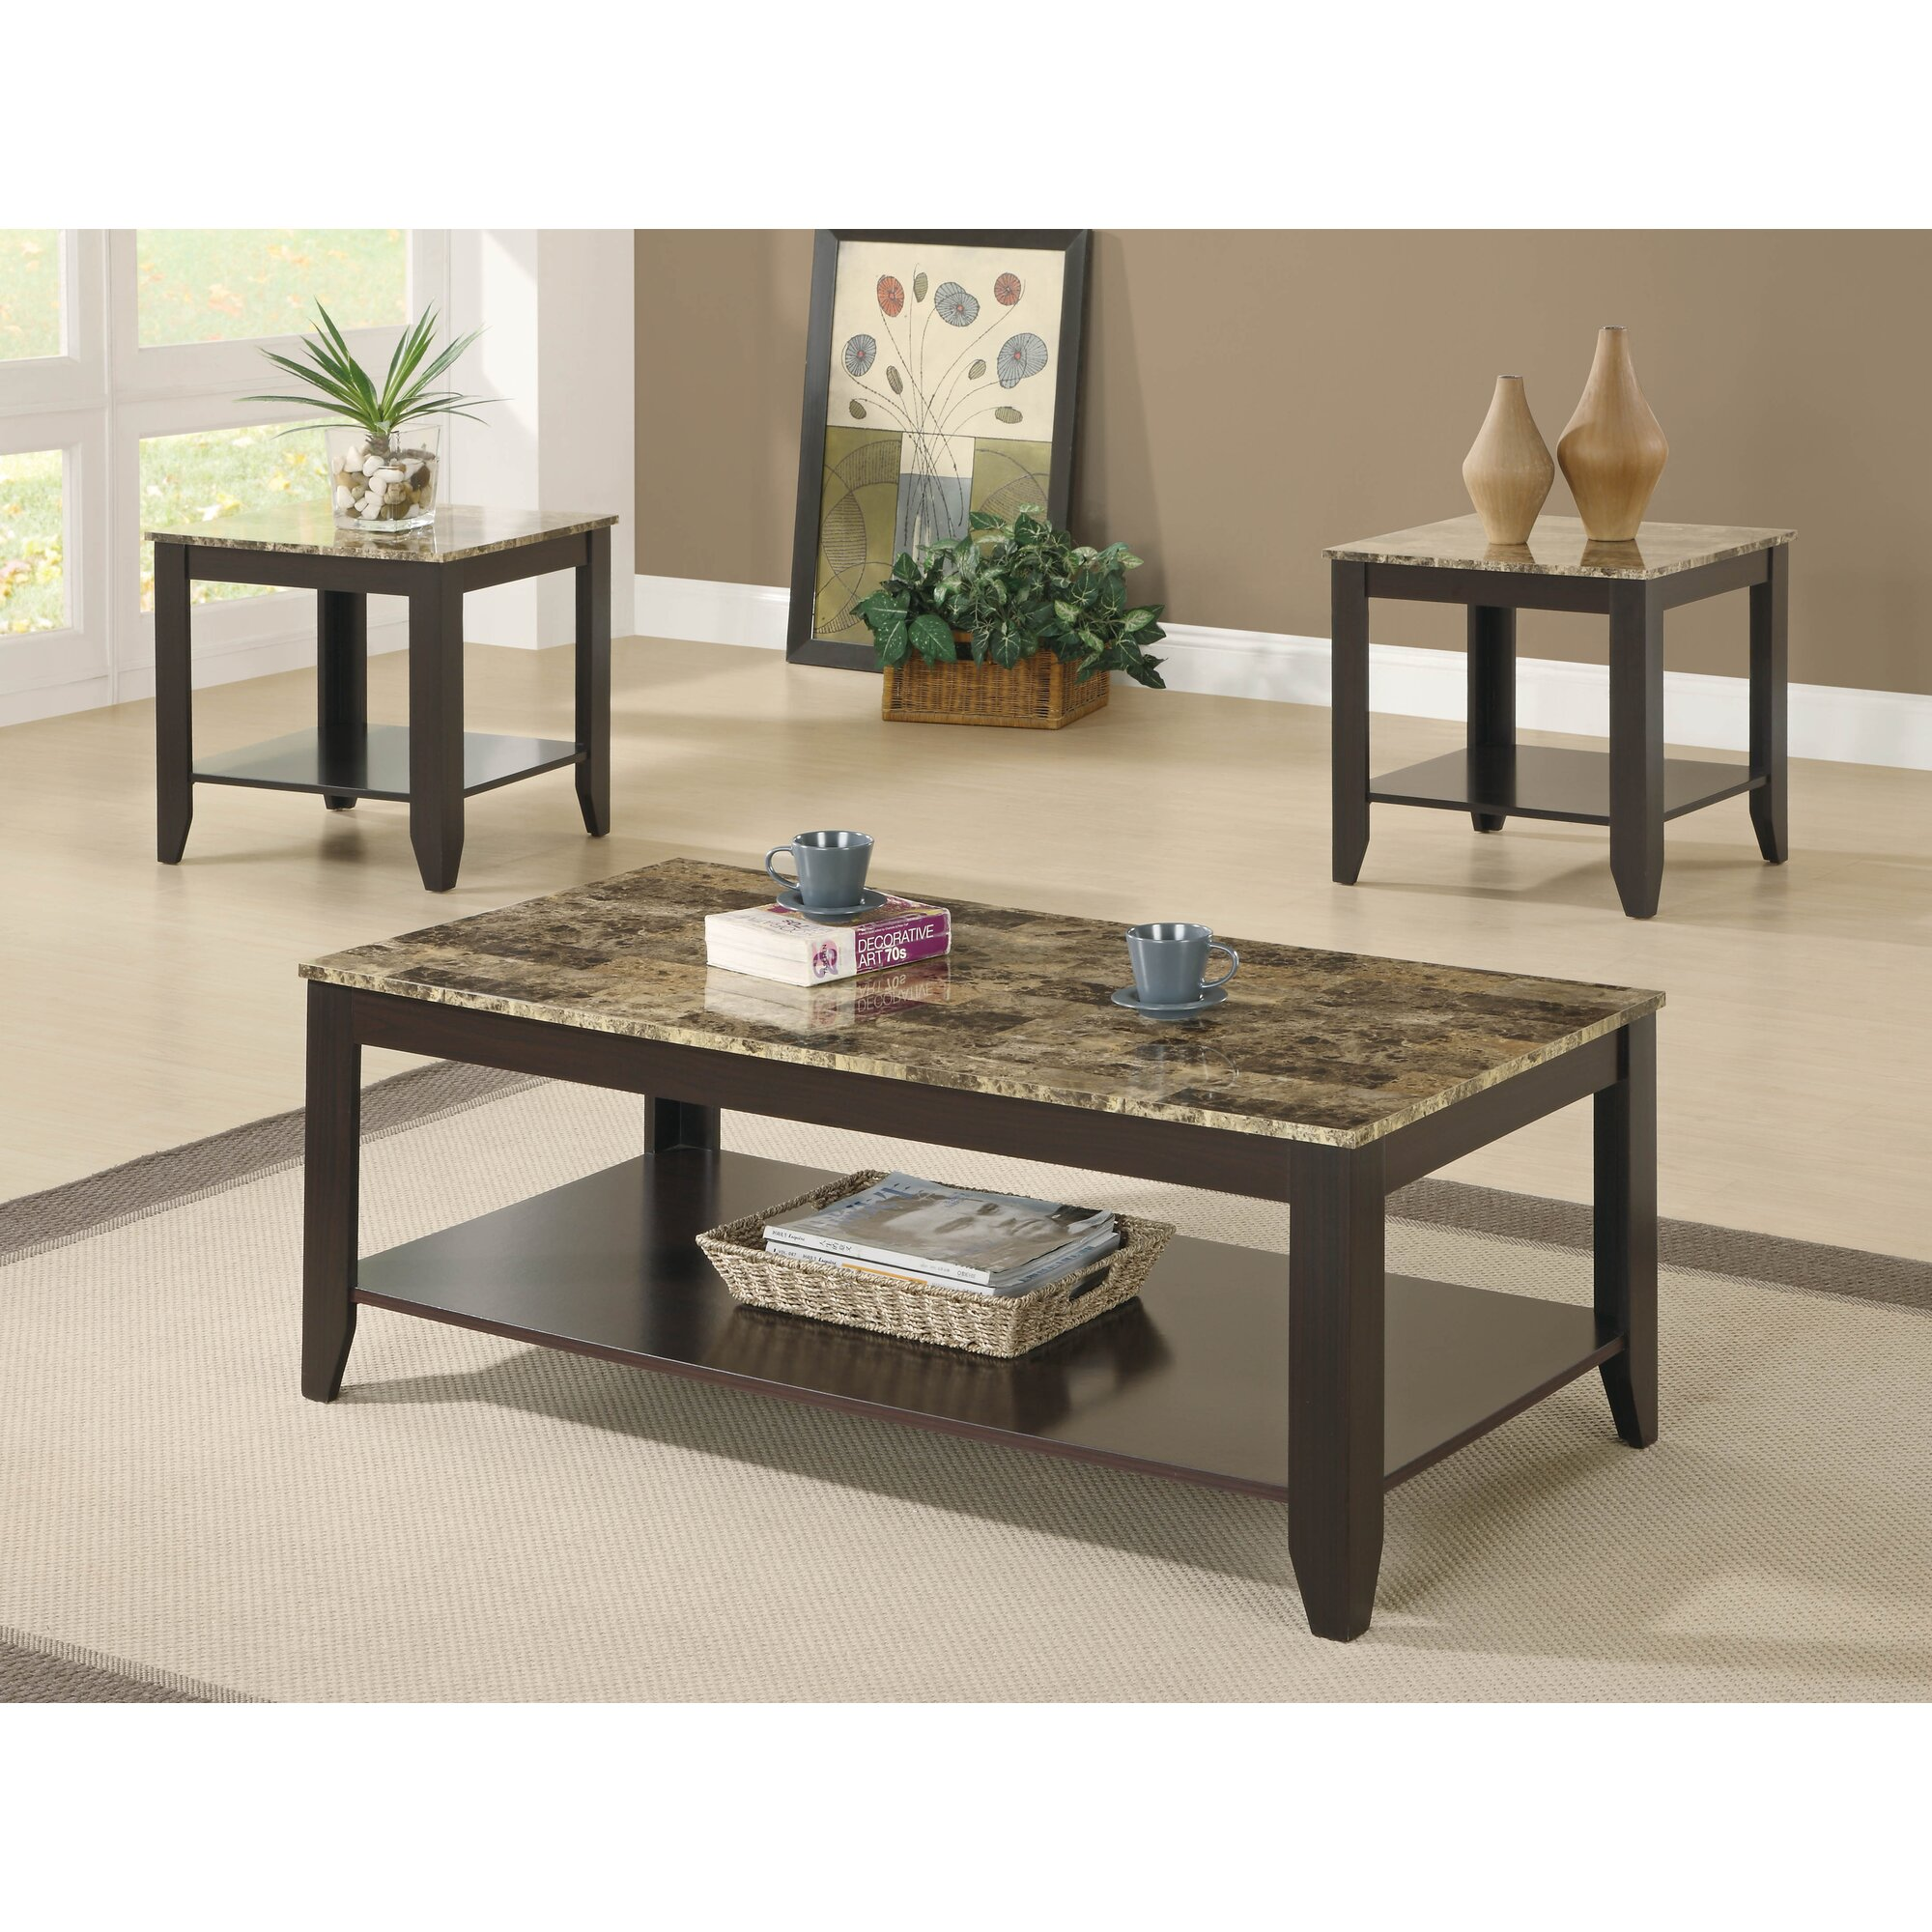 Faux Marble Coffee Table Canada: Titus Furniture 3 Piece Coffee Table Set